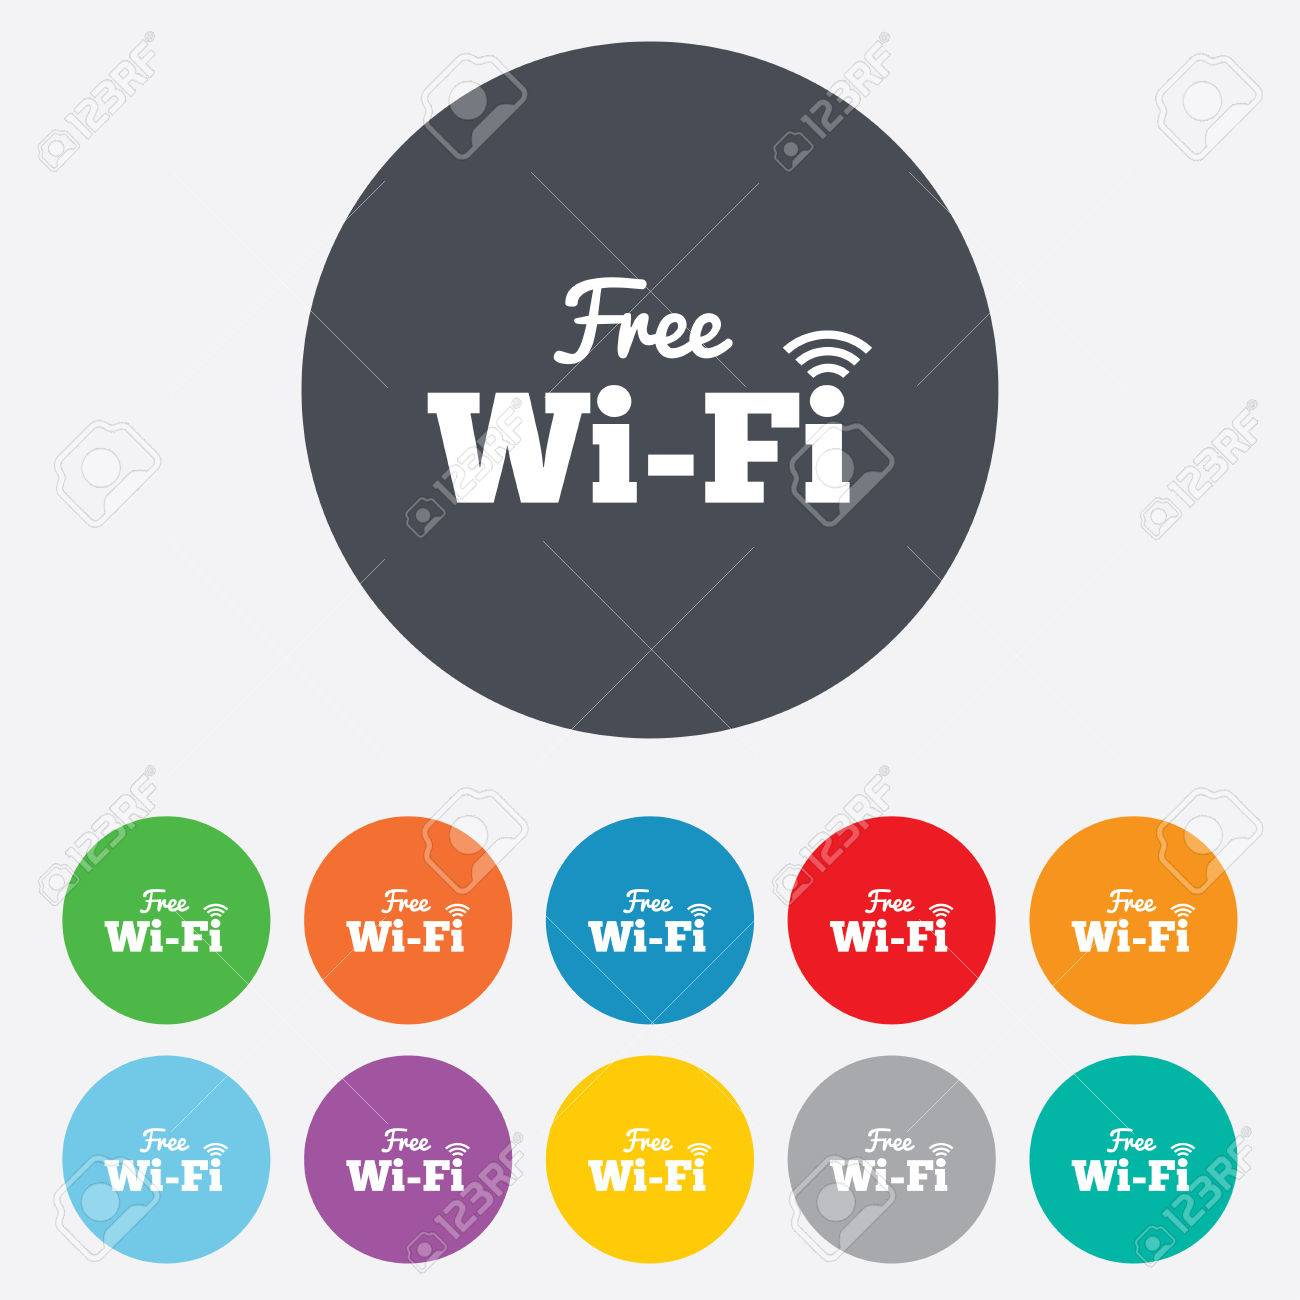 free network diagram icons learning electrical wiring diagrams wireless network icon turcoleacom 25355796 free wifi sign - Network Diagram Icon